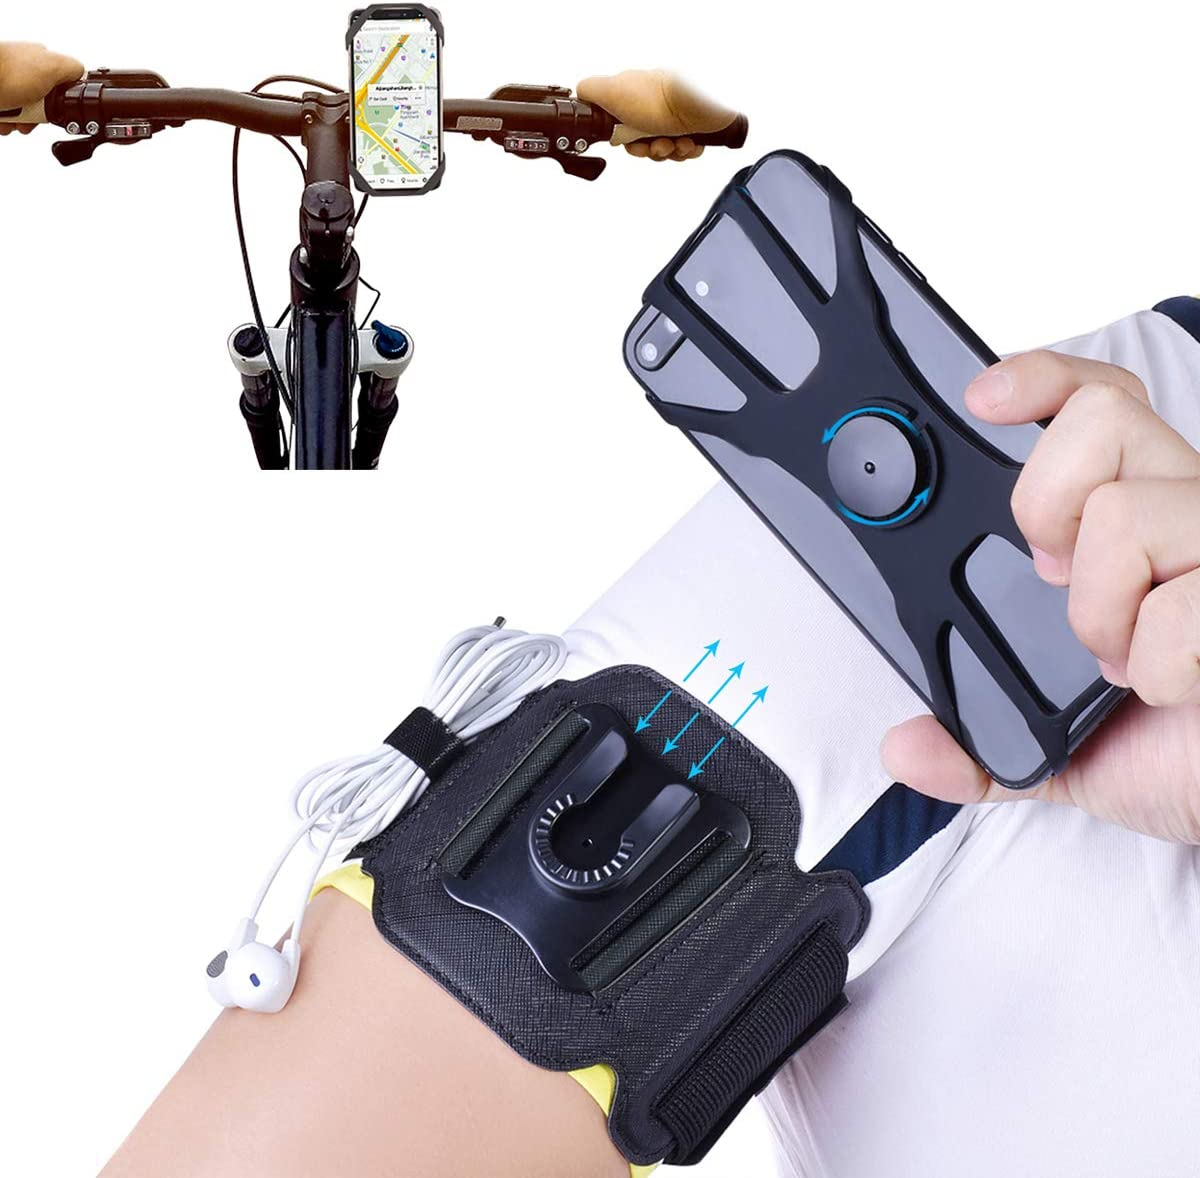 2 in 1 Cell Phone Armband for Running Detachable with Bike Phone Mount Silicone, 360° Rotatable Sports Armband, Universal Cell Phone Holder for Hiking Biking, Use 4 to 6.5 Inch Smartphones (Black)